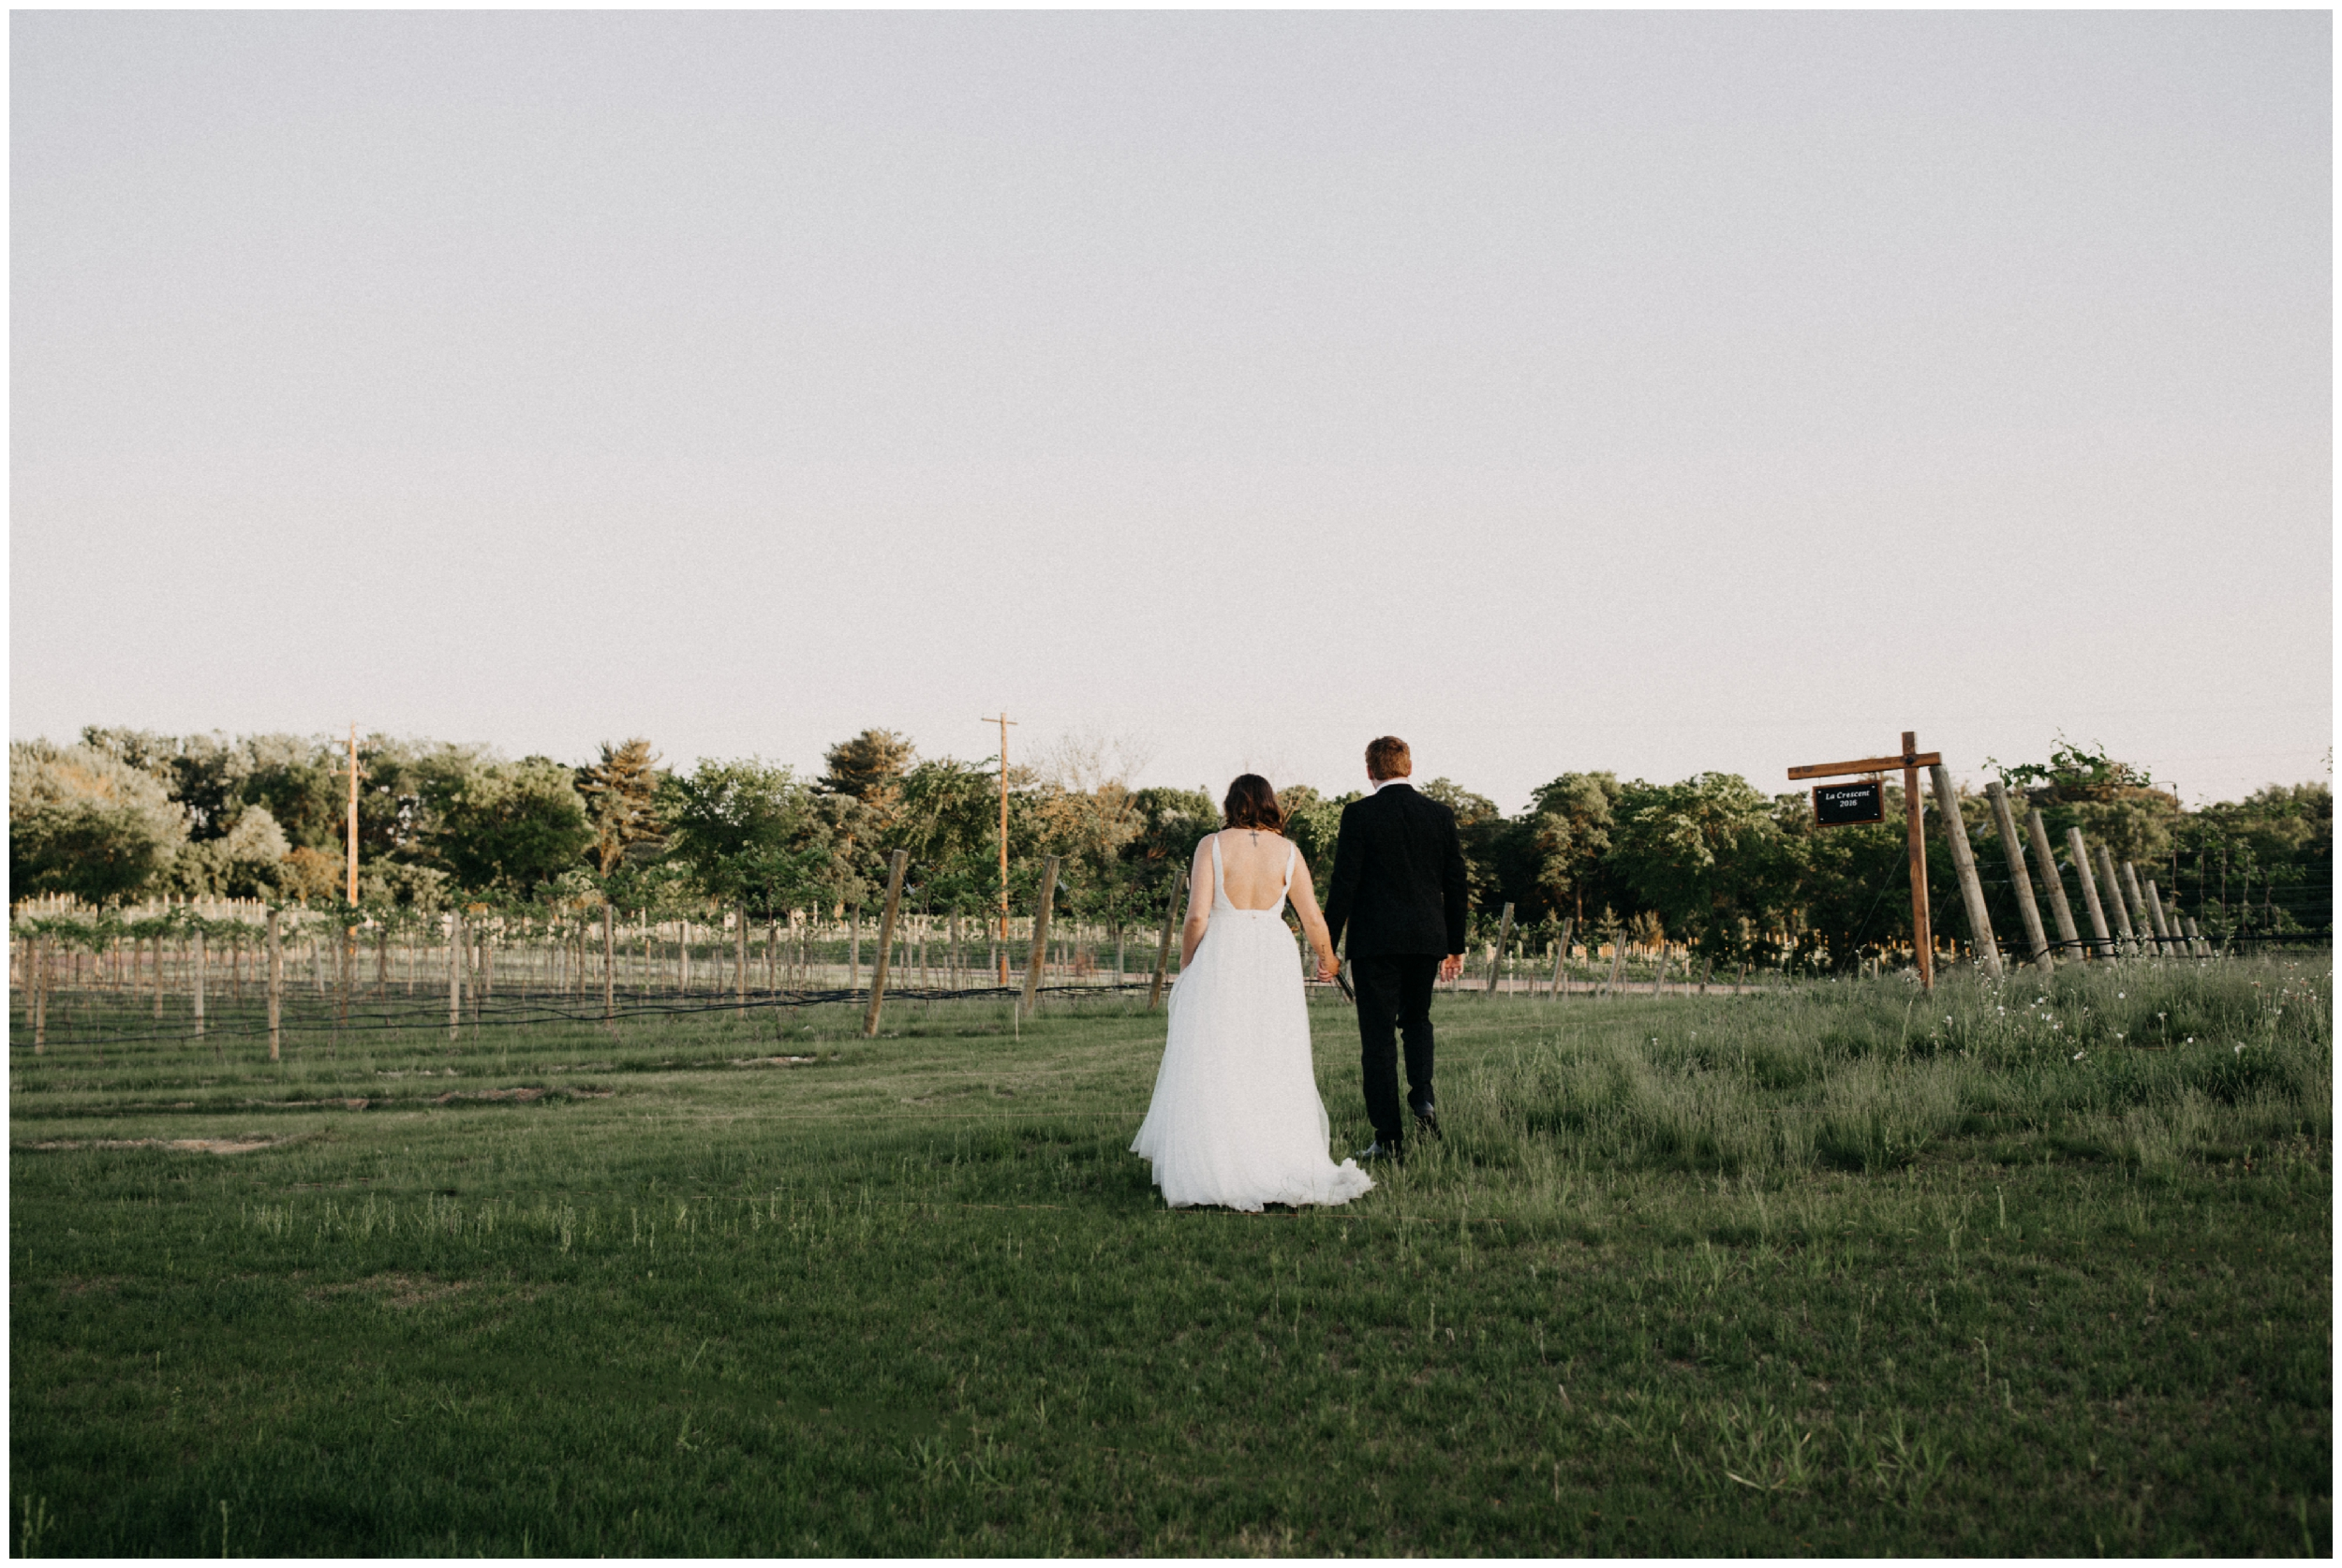 Romantic Minnesota winery wedding